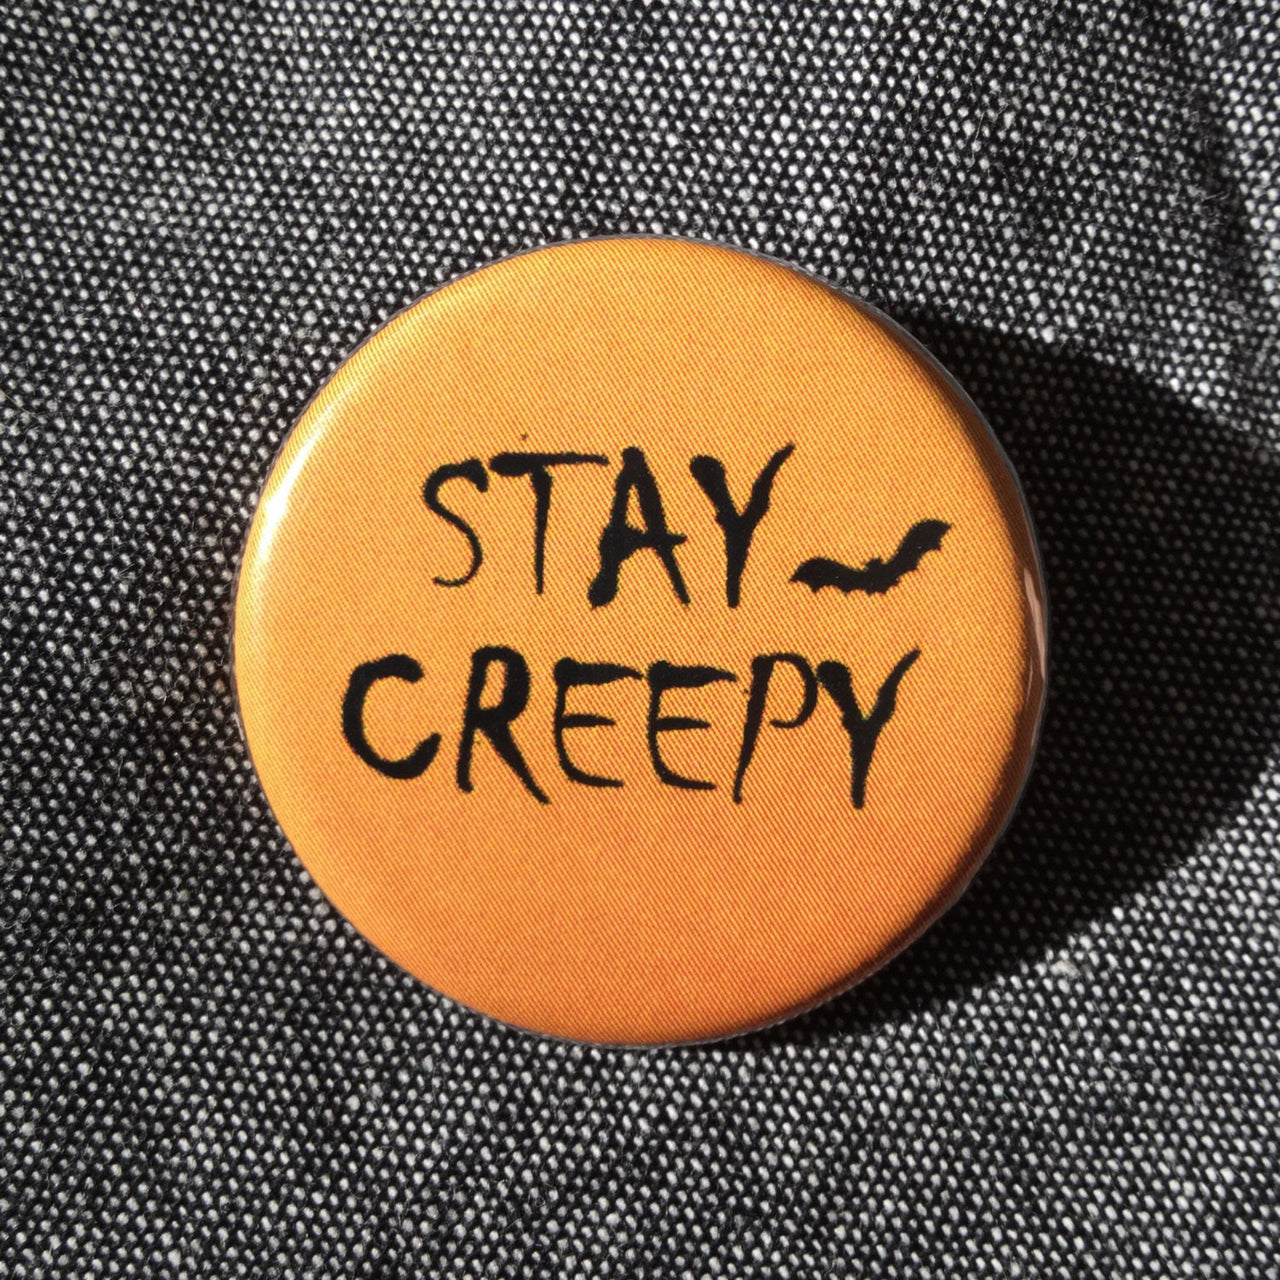 Stay creepy Halloween button - Radical Buttons